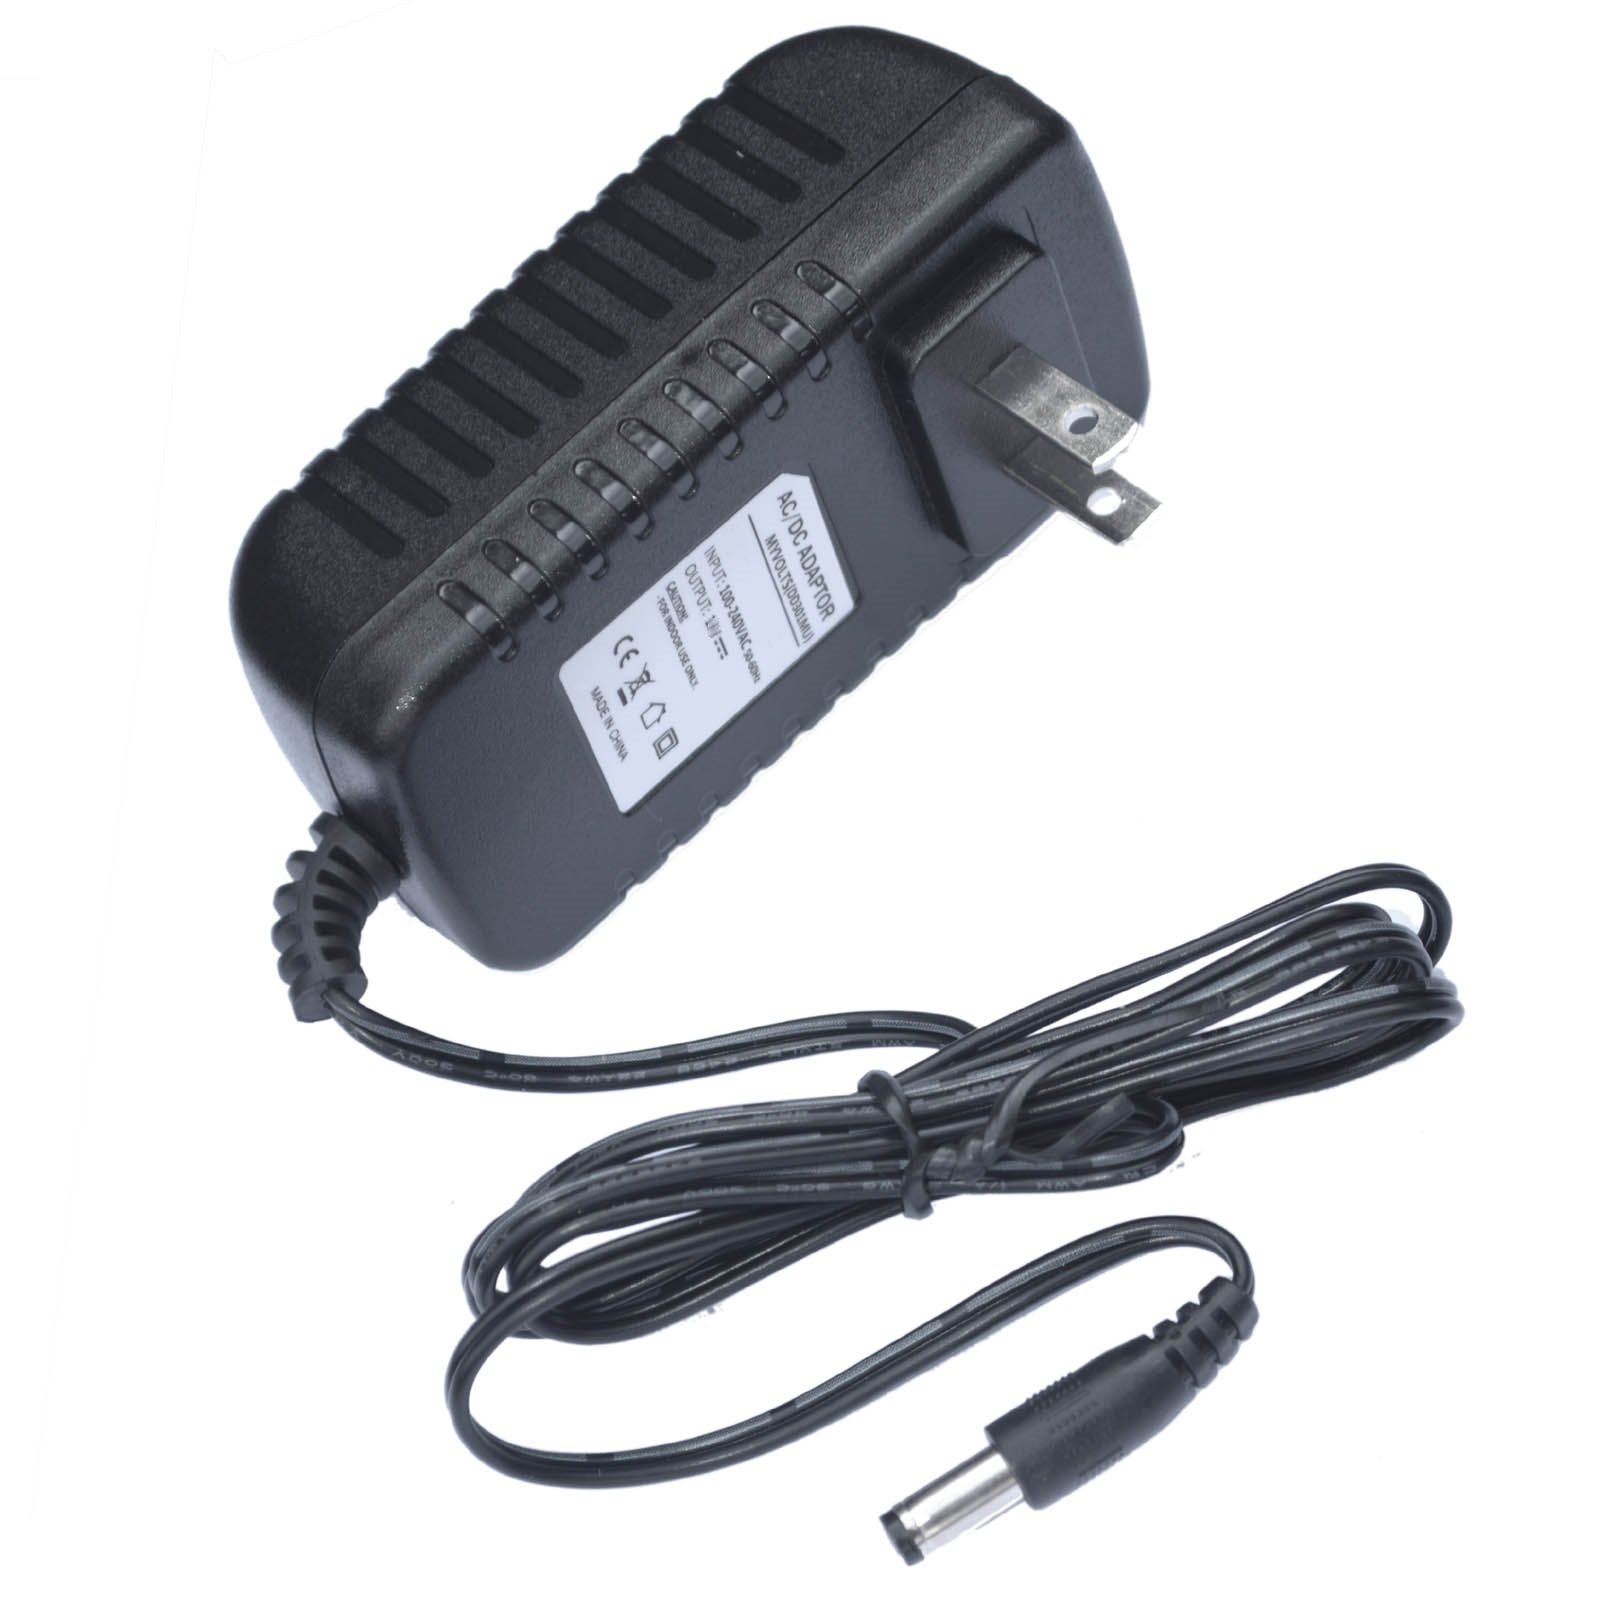 MyVolts 6V Power Supply Adaptor Compatible with Motorola MBP36 Baby Monitor - US Plug by MyVolts